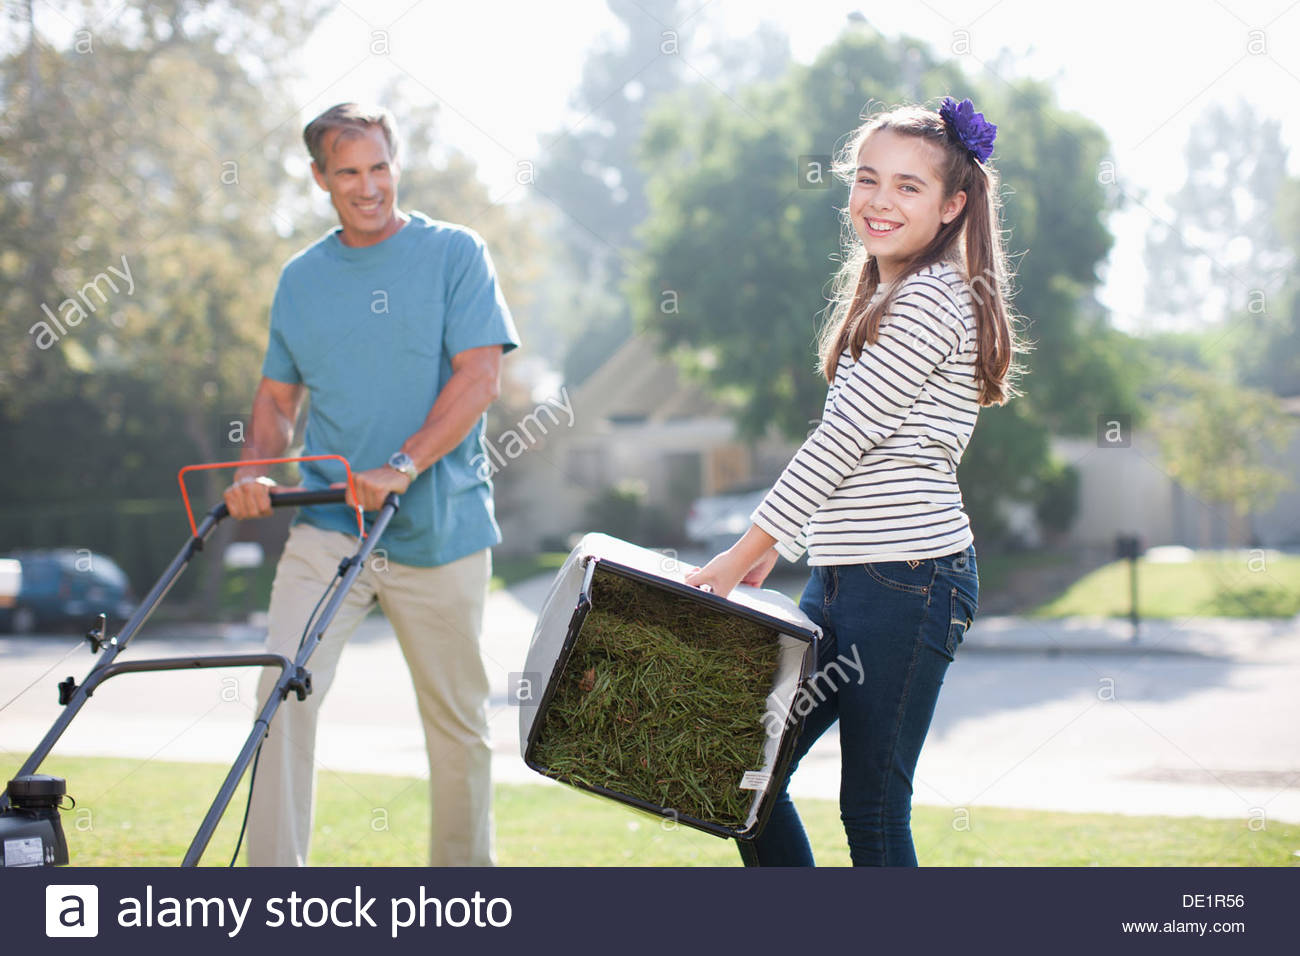 Father and daughter mowing lawn together - Stock Image